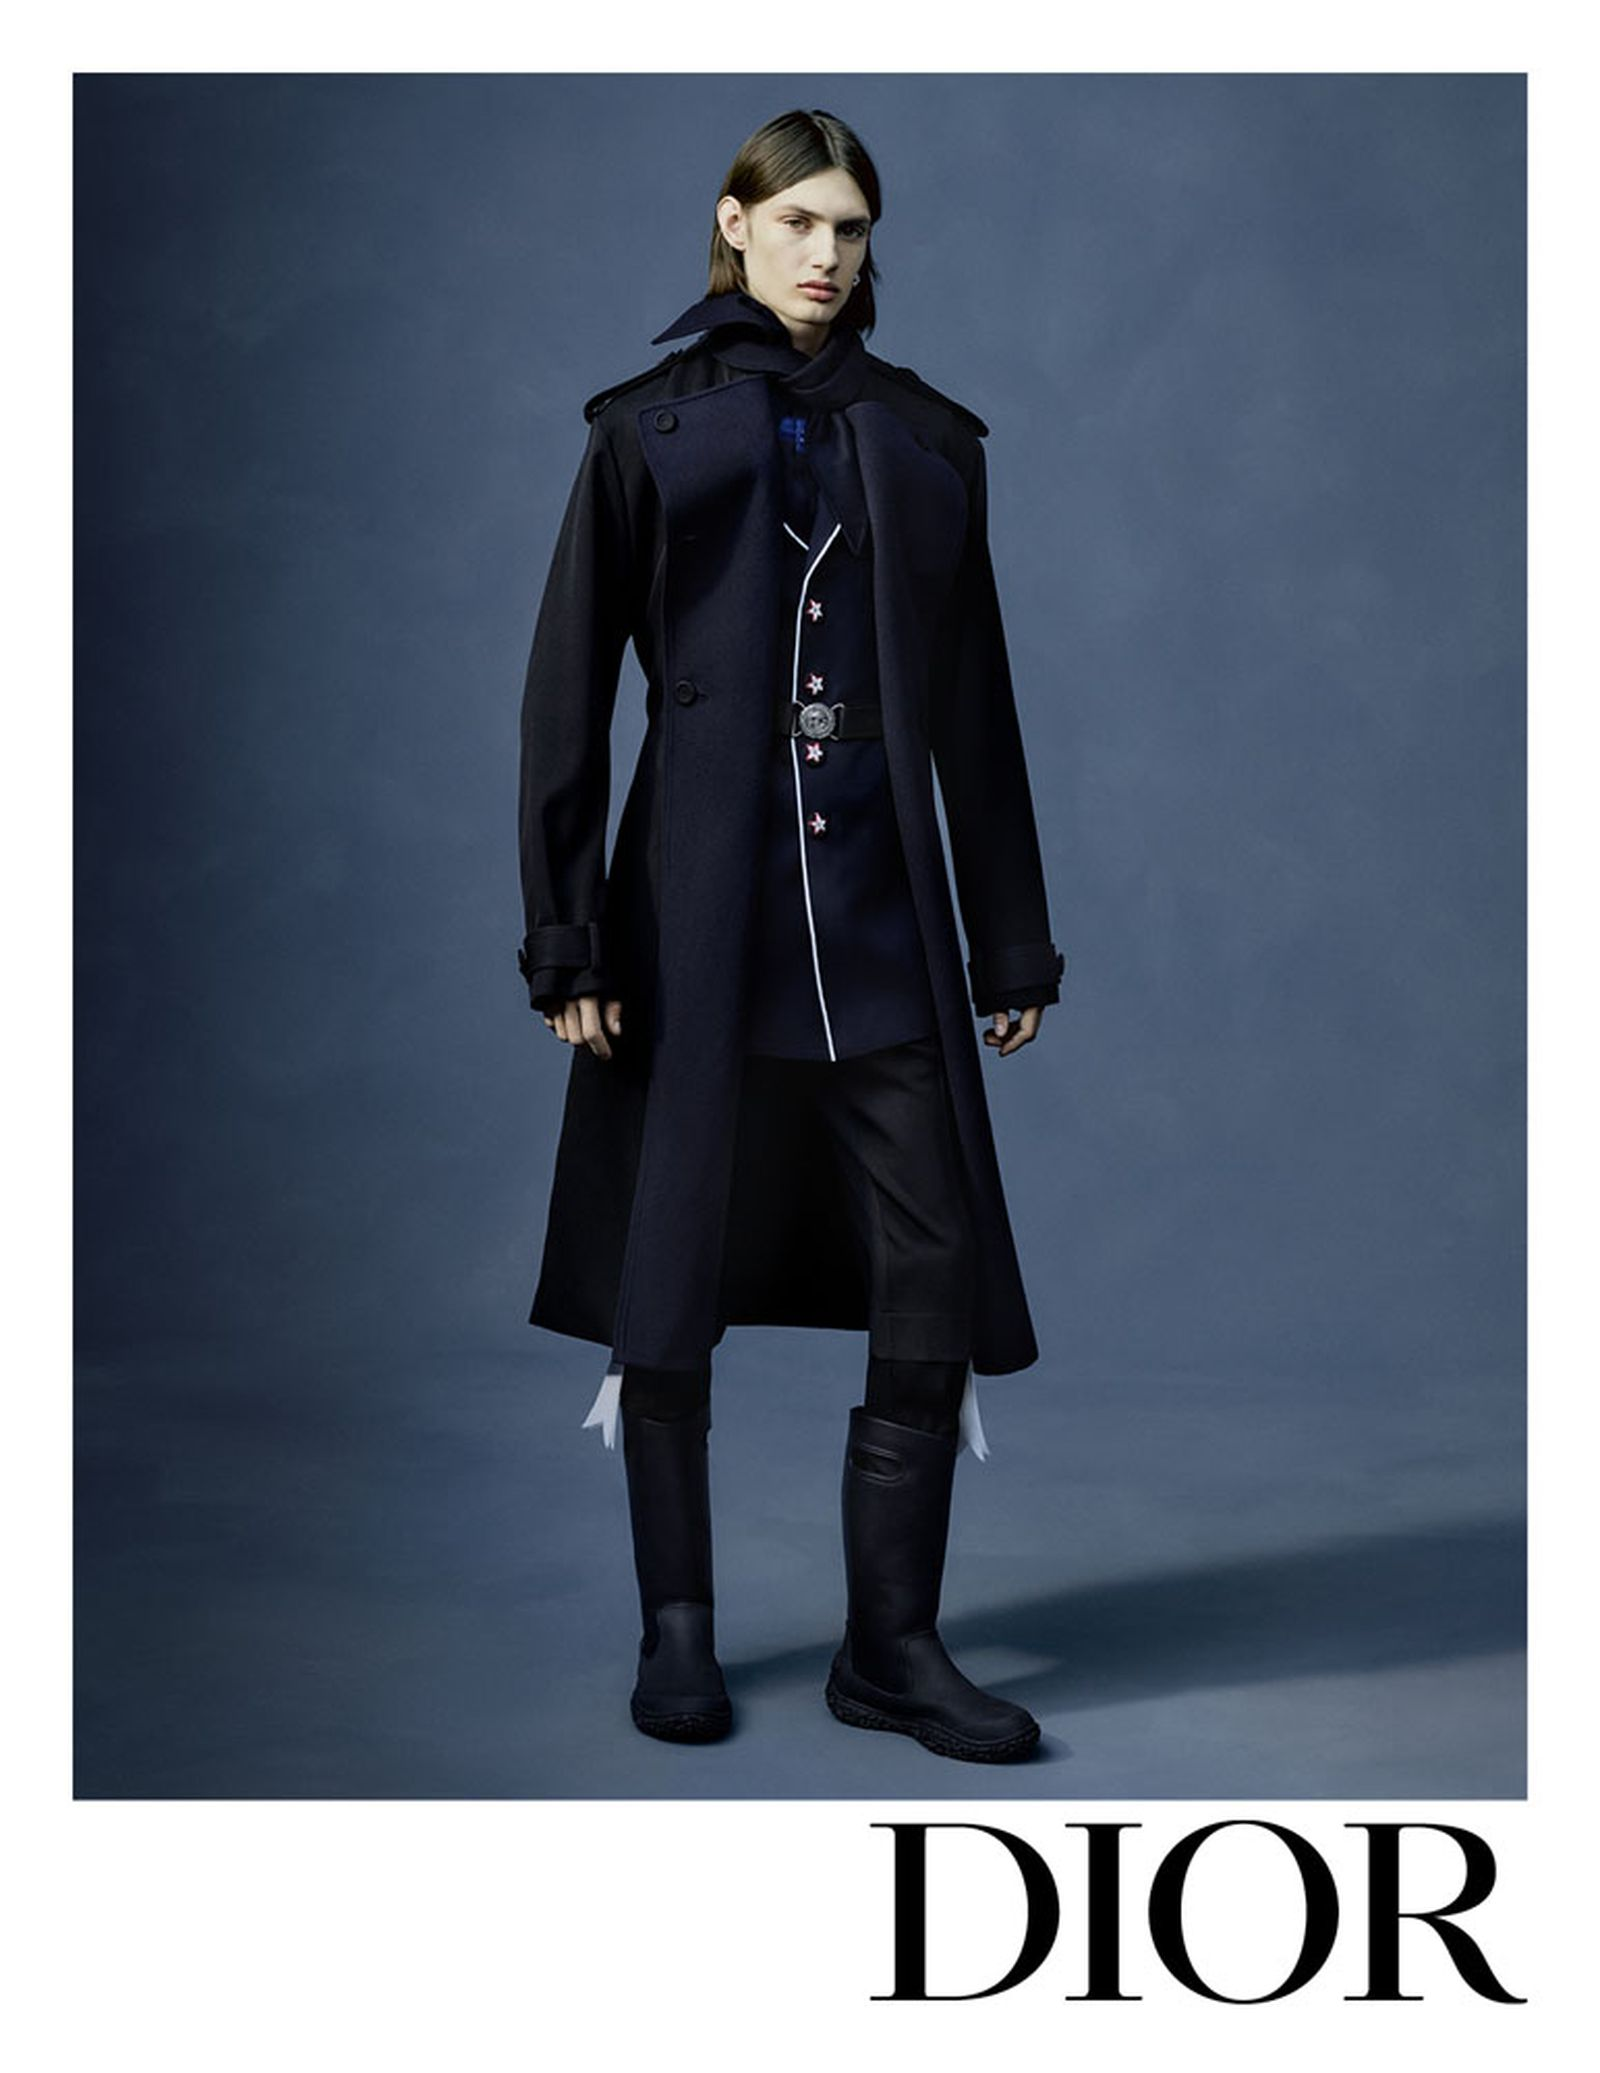 dior-mens-winter-2021-campain-peter-doig-collaboration-03